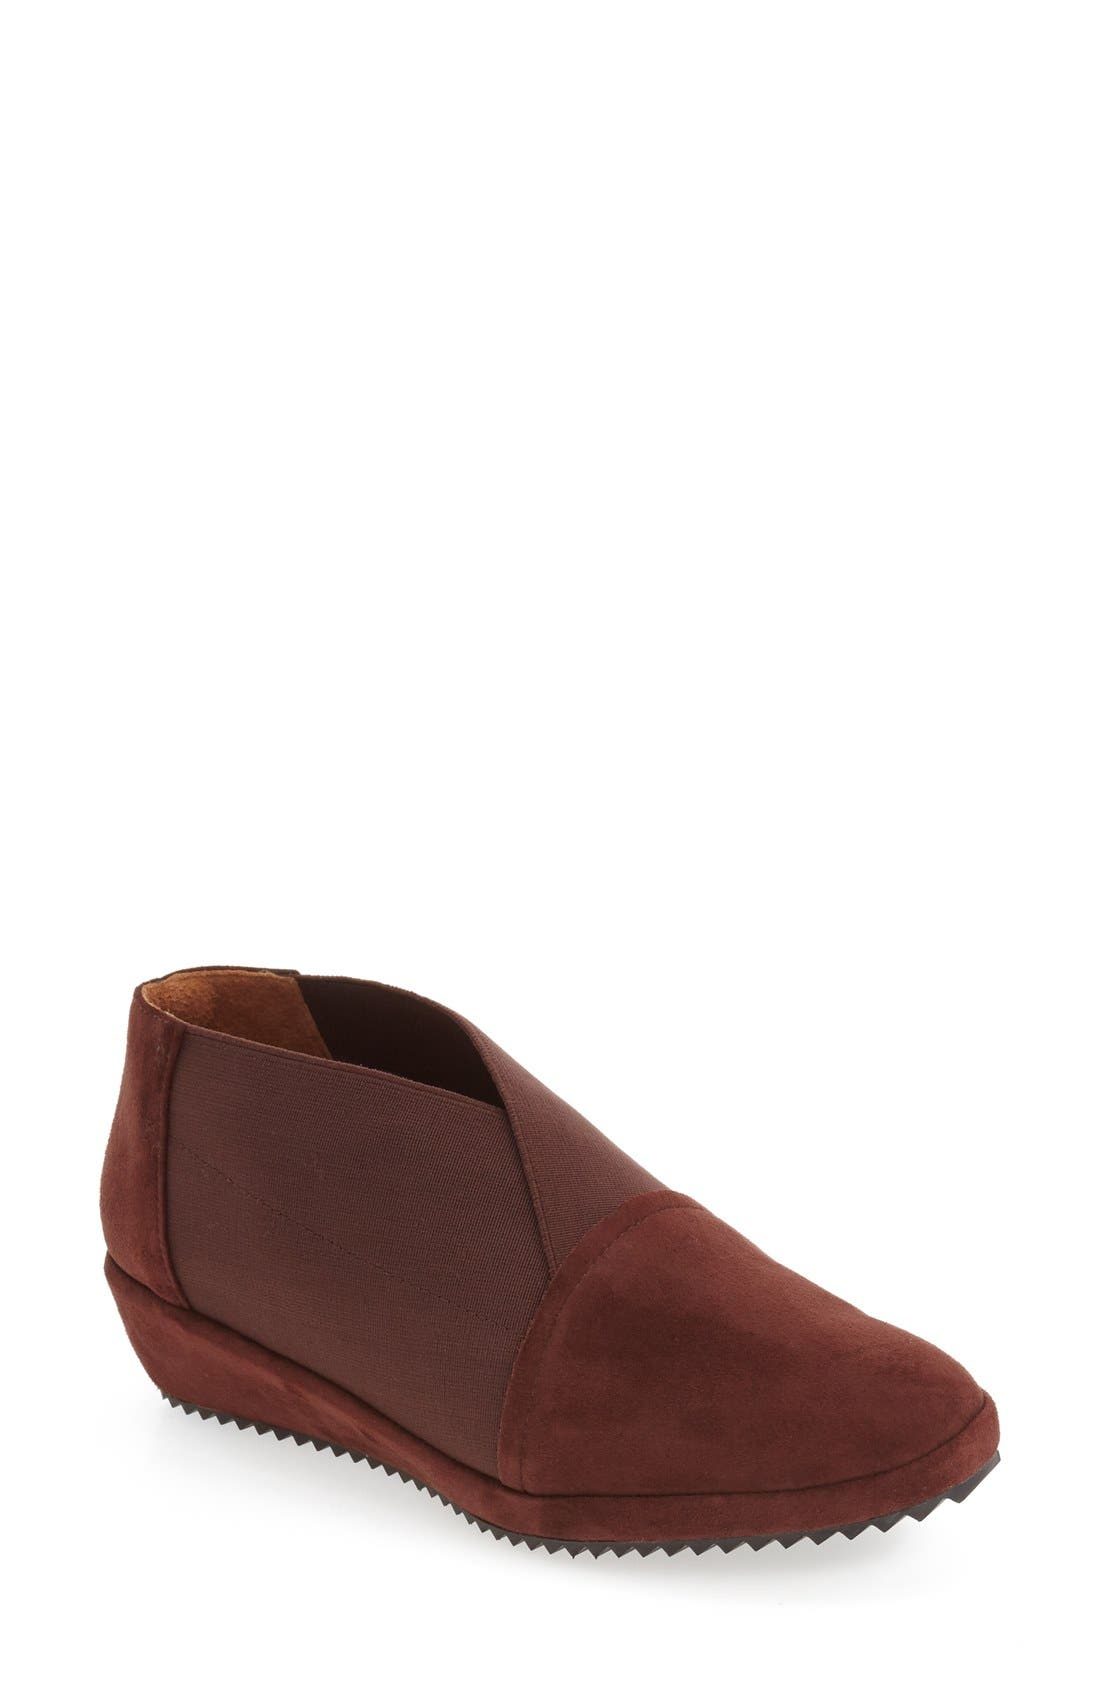 L'Amour des Pieds 'Bowden' Slip-On Wedge (Women)